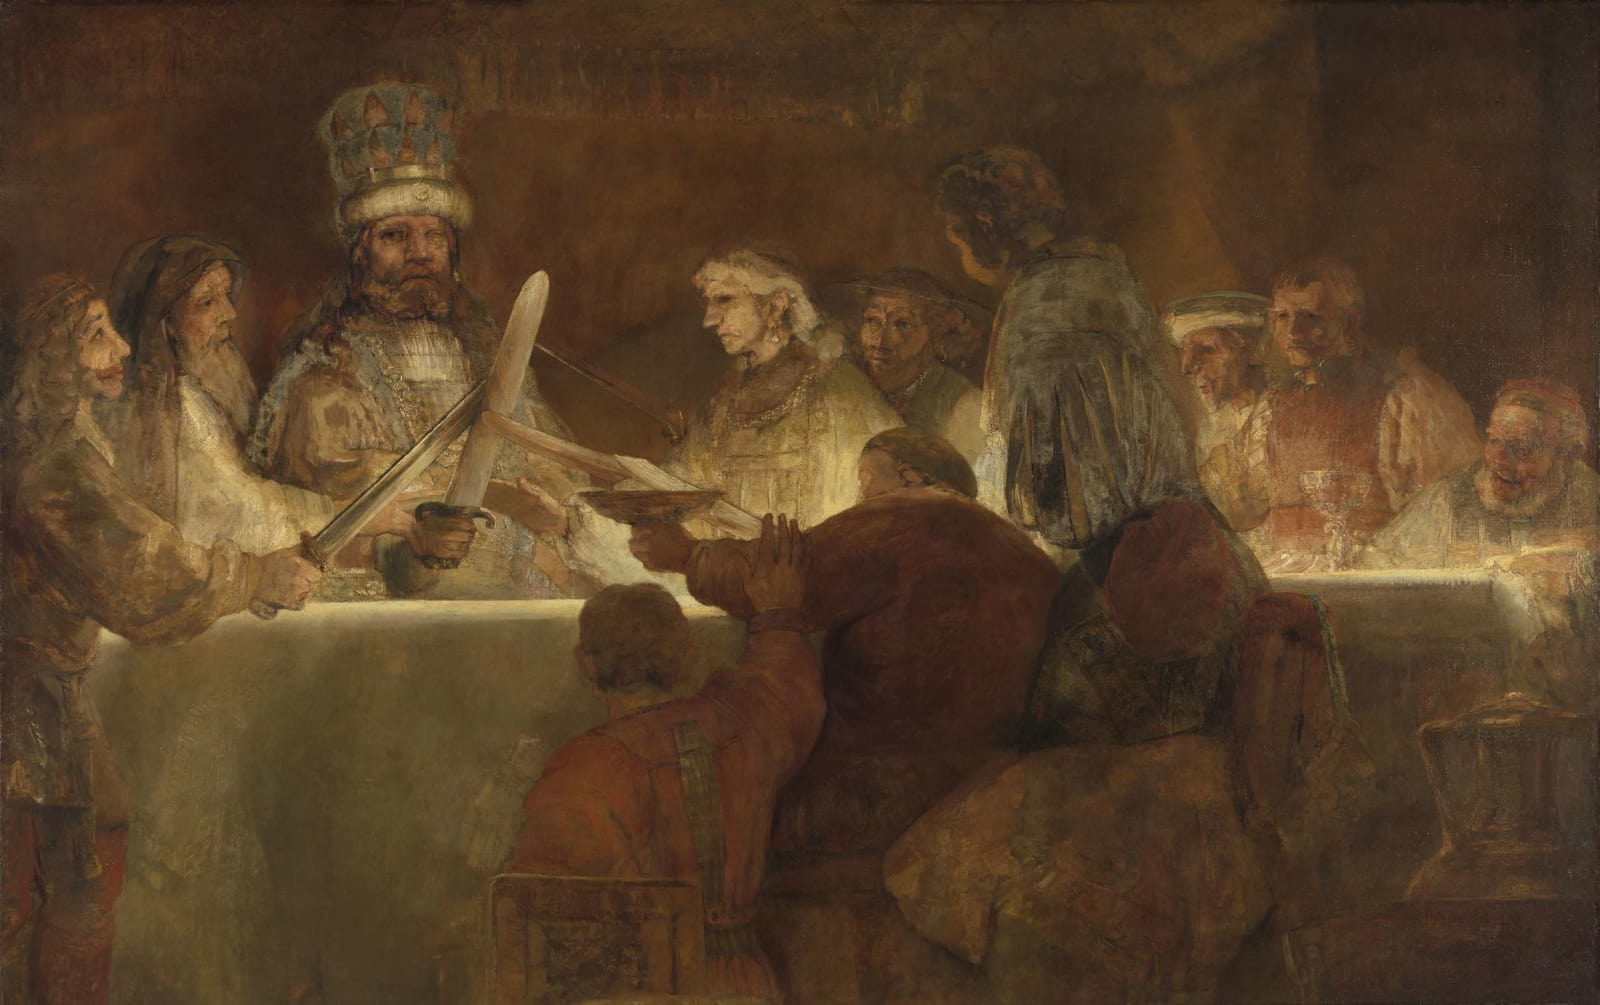 Rembrandt, The Conspiracy of the Batavians under Claudius Civilis, 1534